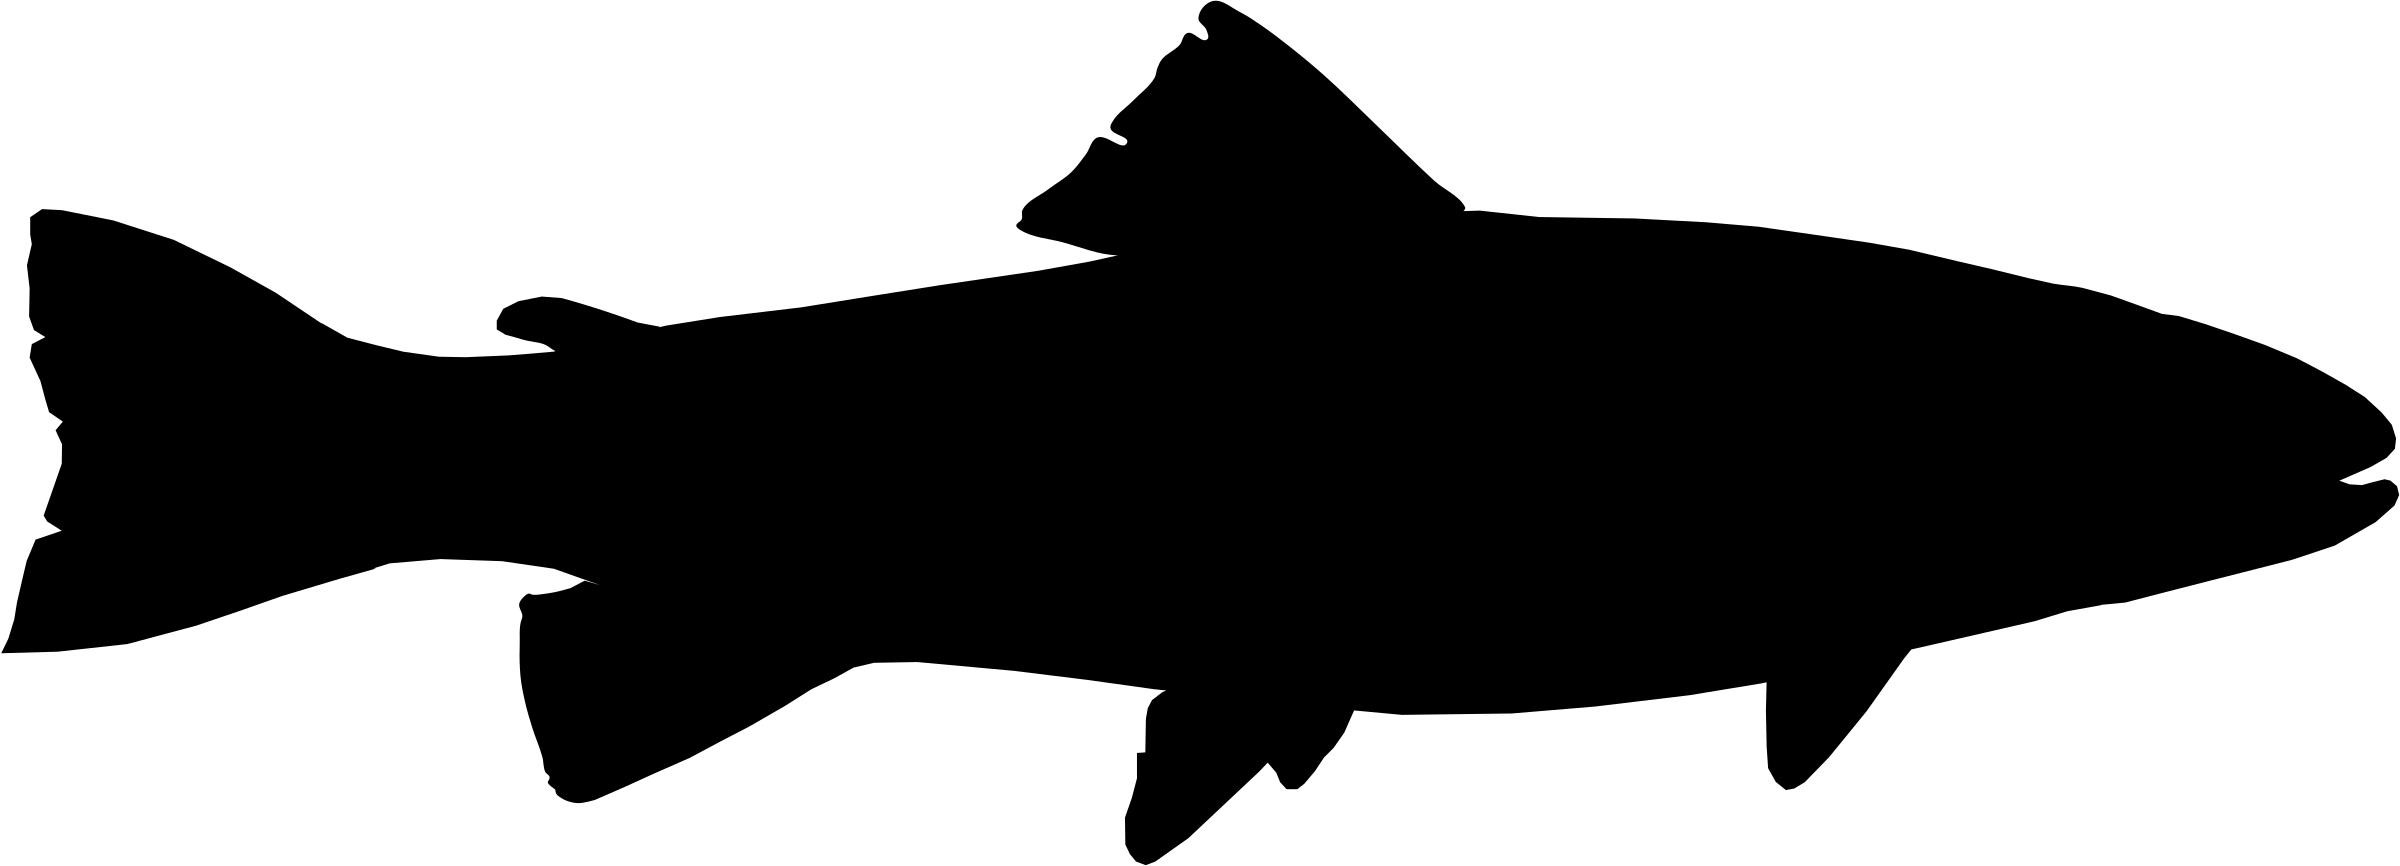 2400x866 Free Image On Pixabay Fish Black Fishing Silhouette With Trout